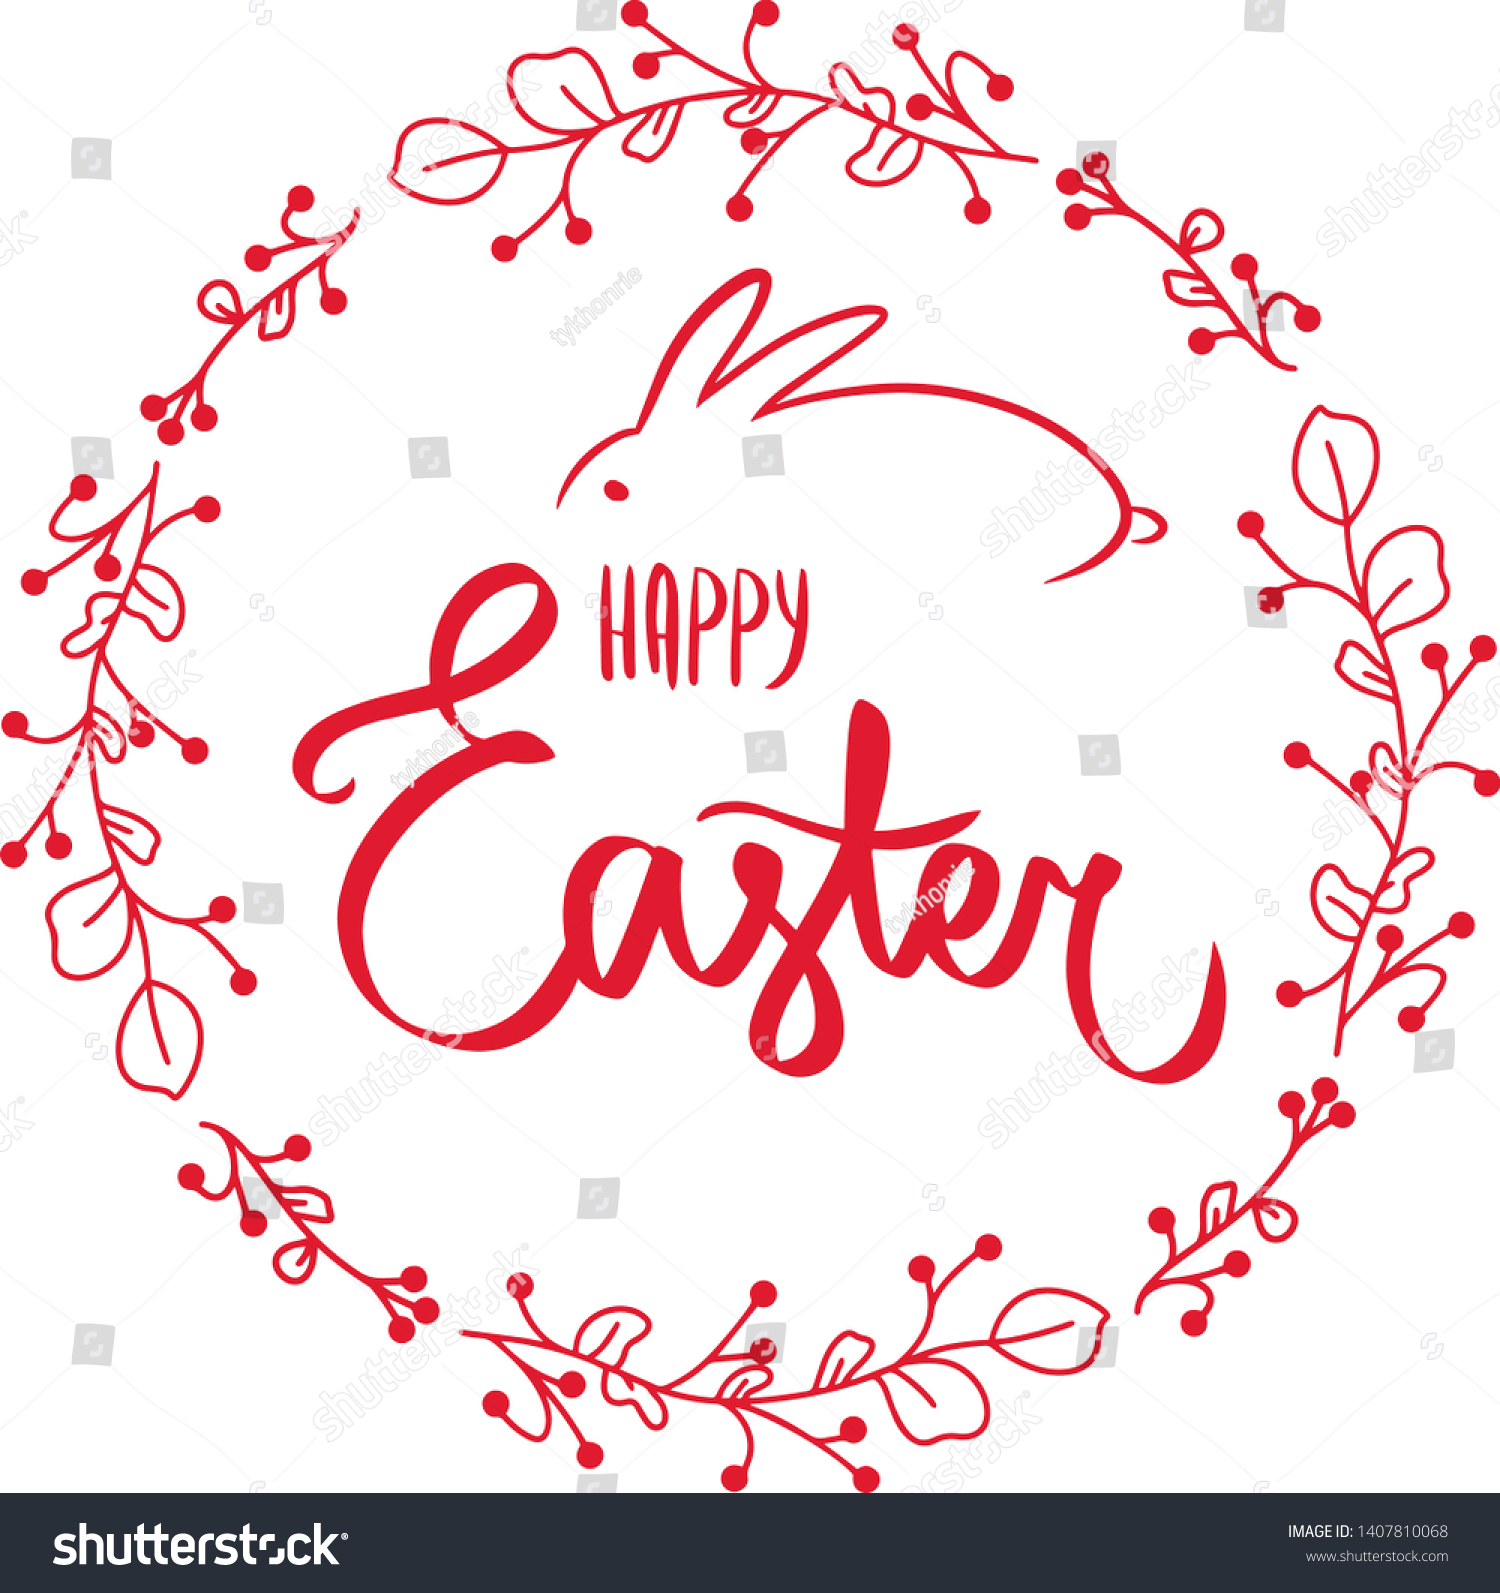 stock-vector-hand-drawn-happy-easter-day